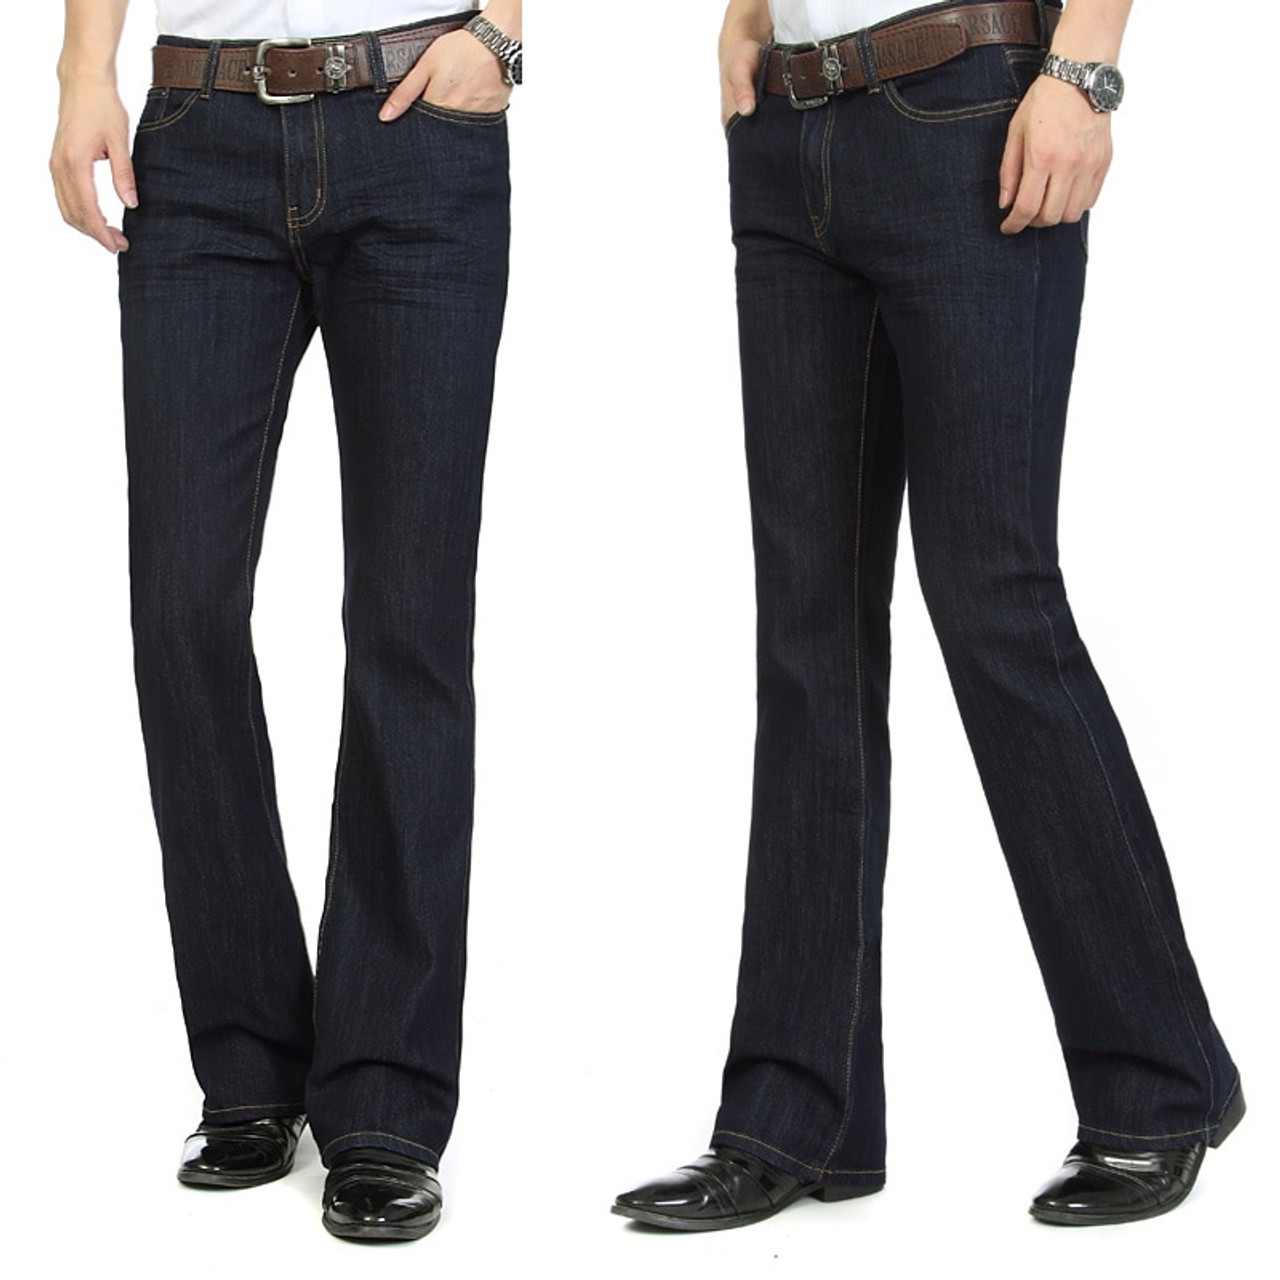 Free Shipping Men S Business Casual Jeans Male Mid Waist Elastic Slim Boot Cut Semi Flared Four Seasons Bell Bottom Jeans 26 36